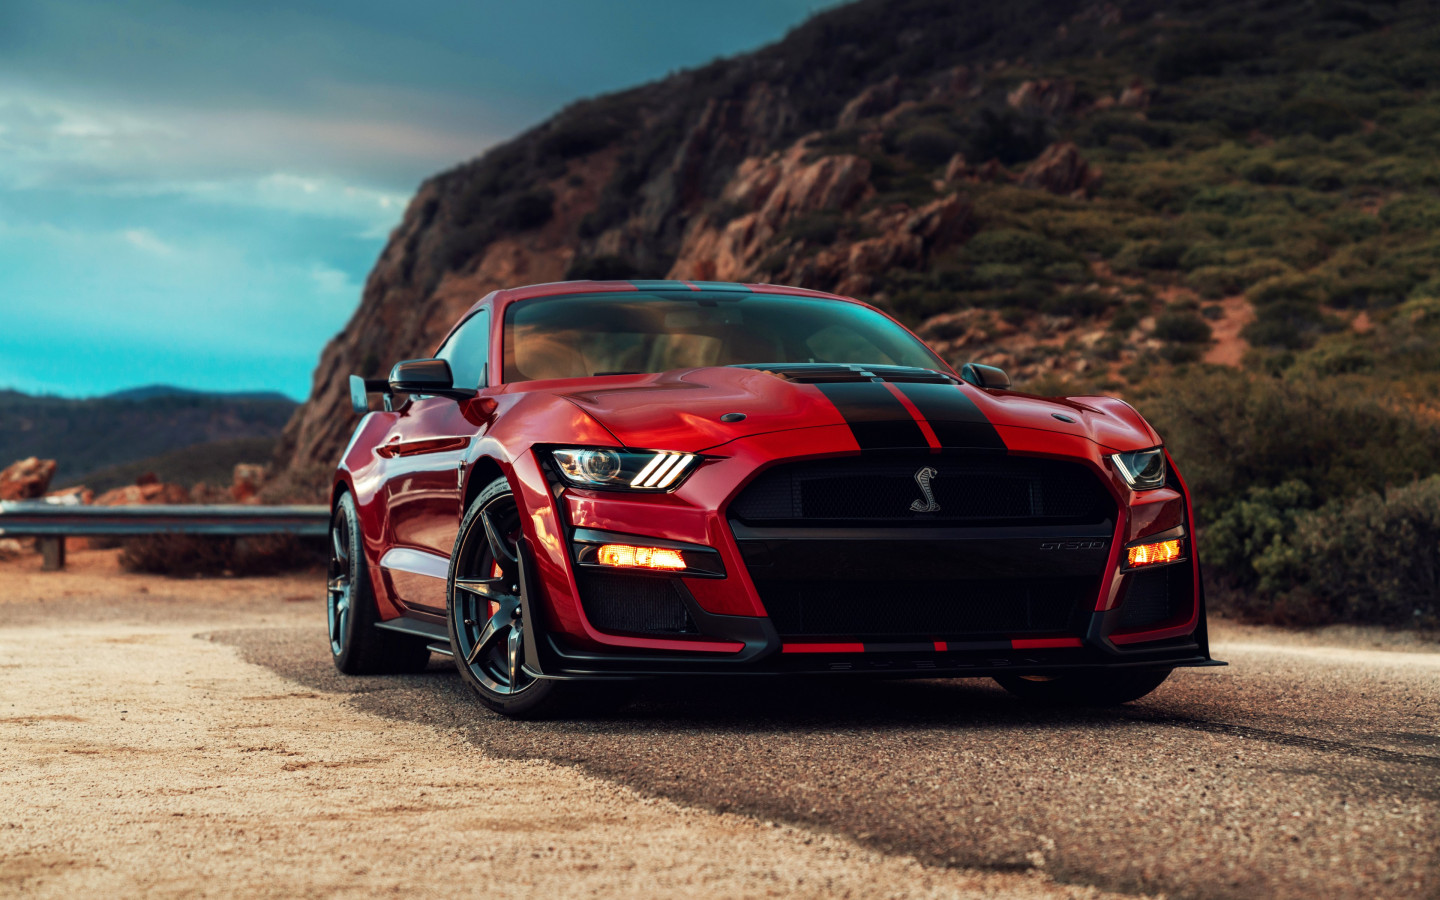 Ford Mustang Shelby GT500 | 1440x900 wallpaper